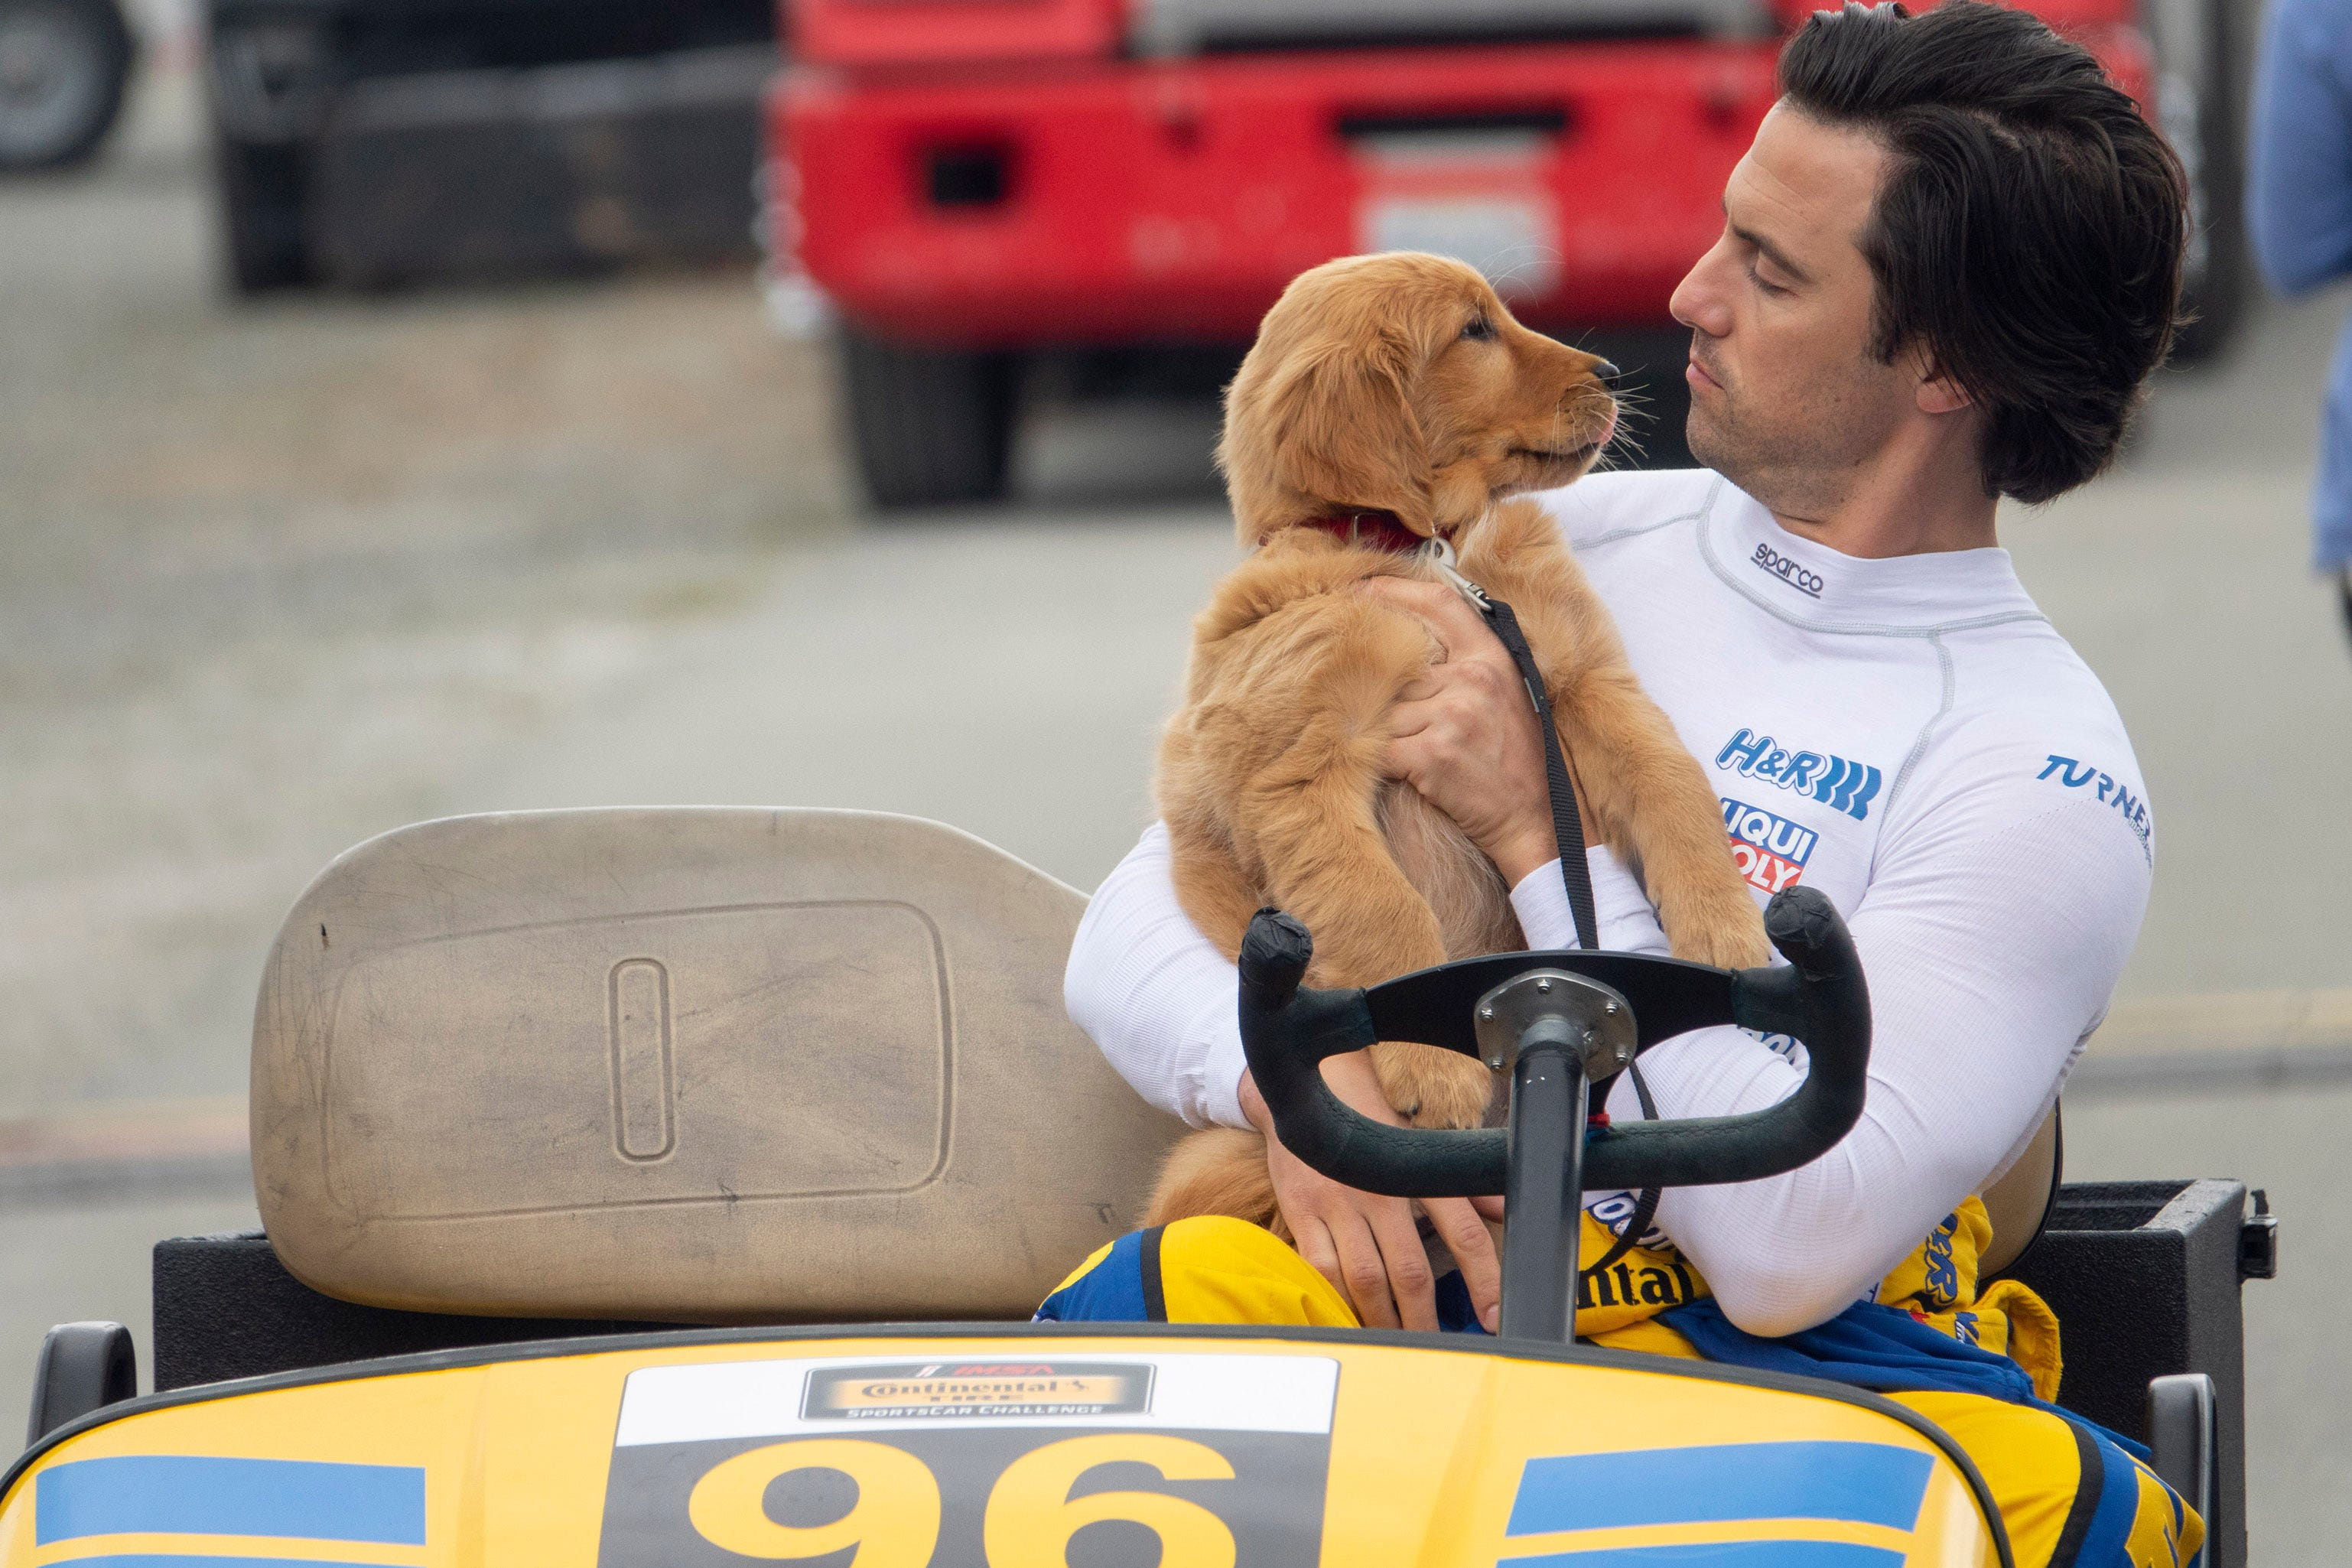 a dog movie 2019 The Art Of Racing In The Rain This Dog Movie Will Have You